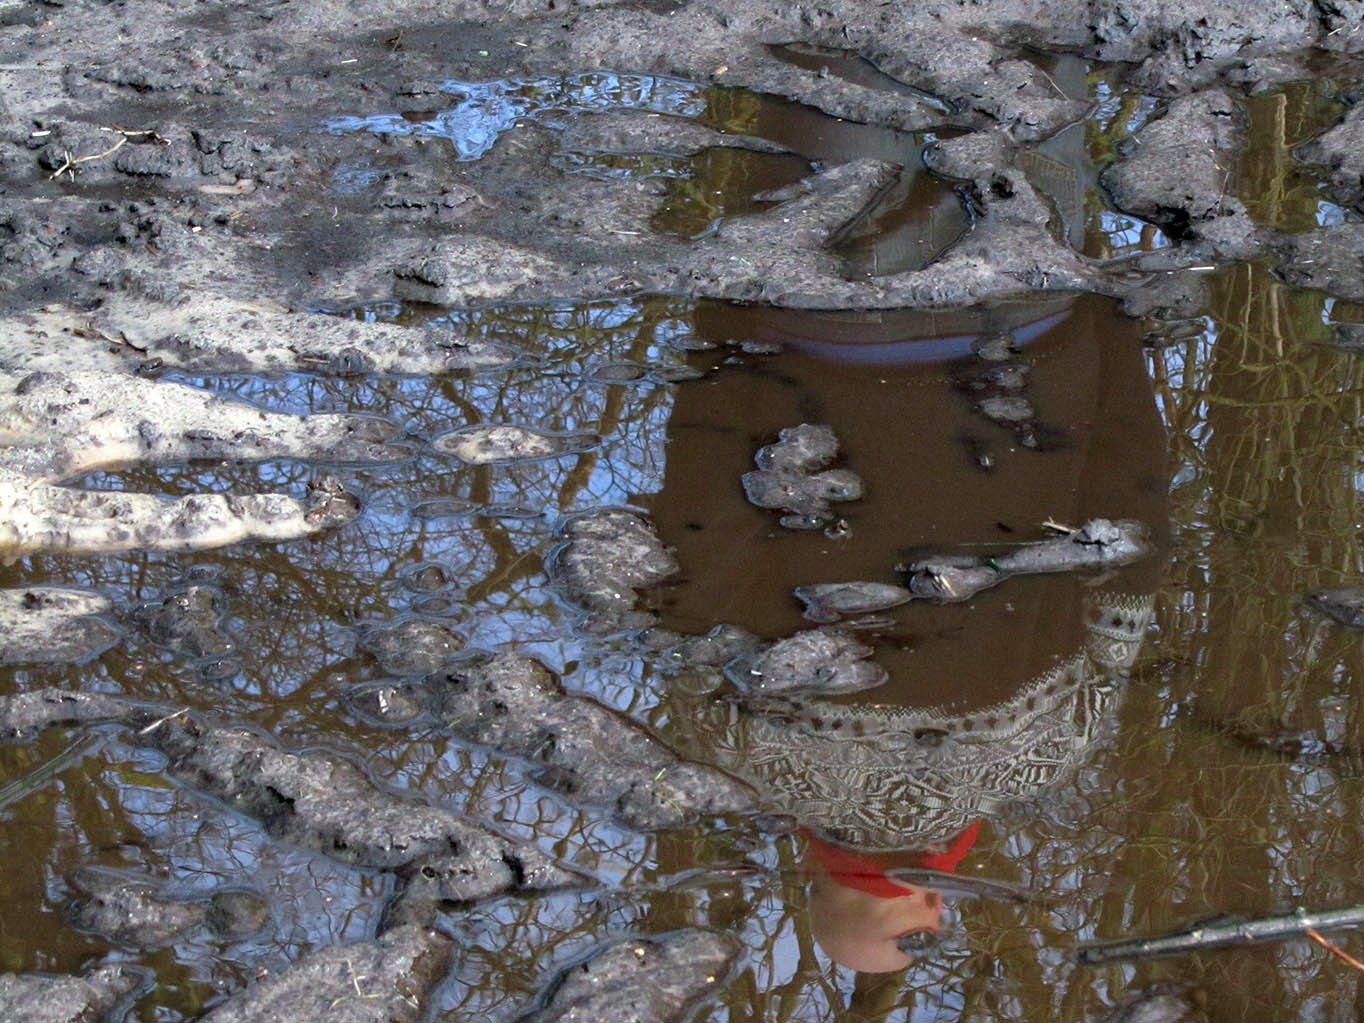 reflection of a man in a muddy pool